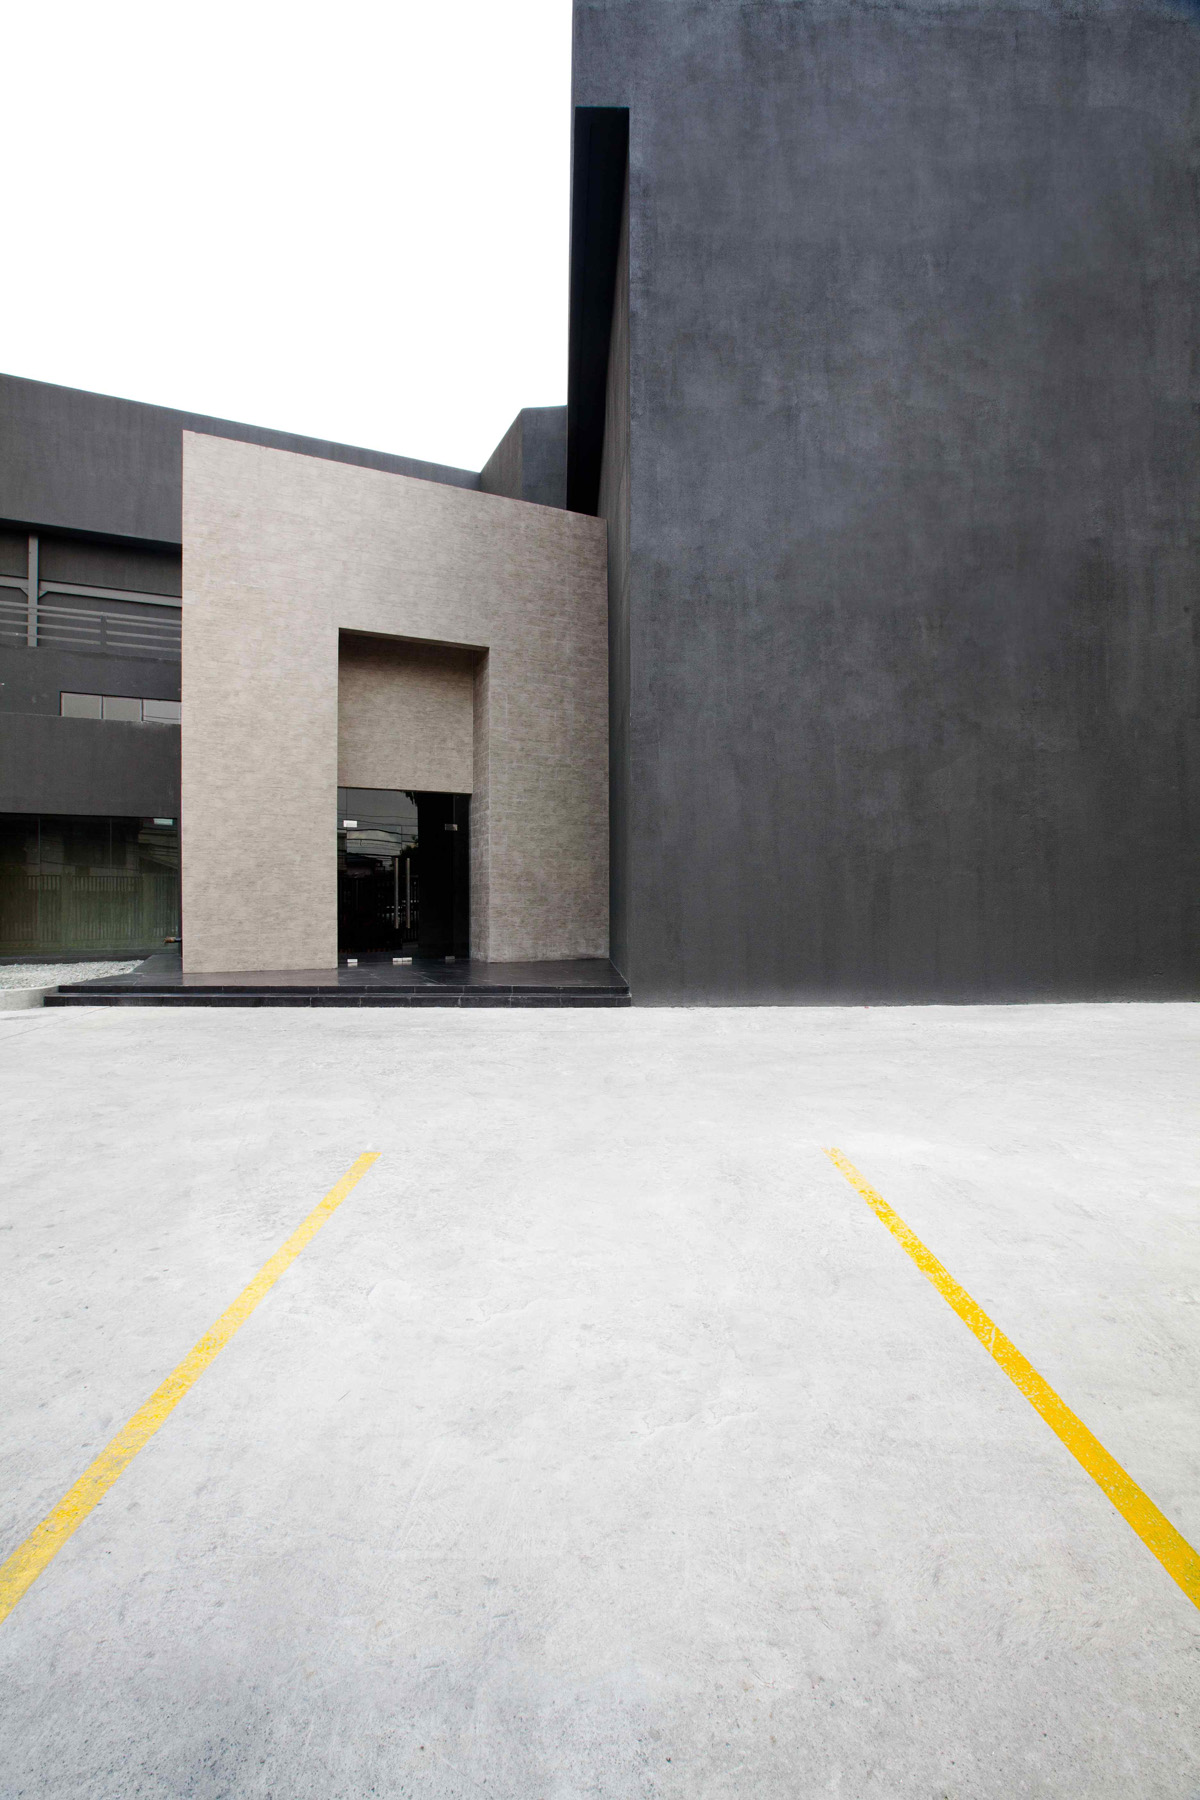 Shooting Gallery Studios Manila - Facade 3 / Parking Space